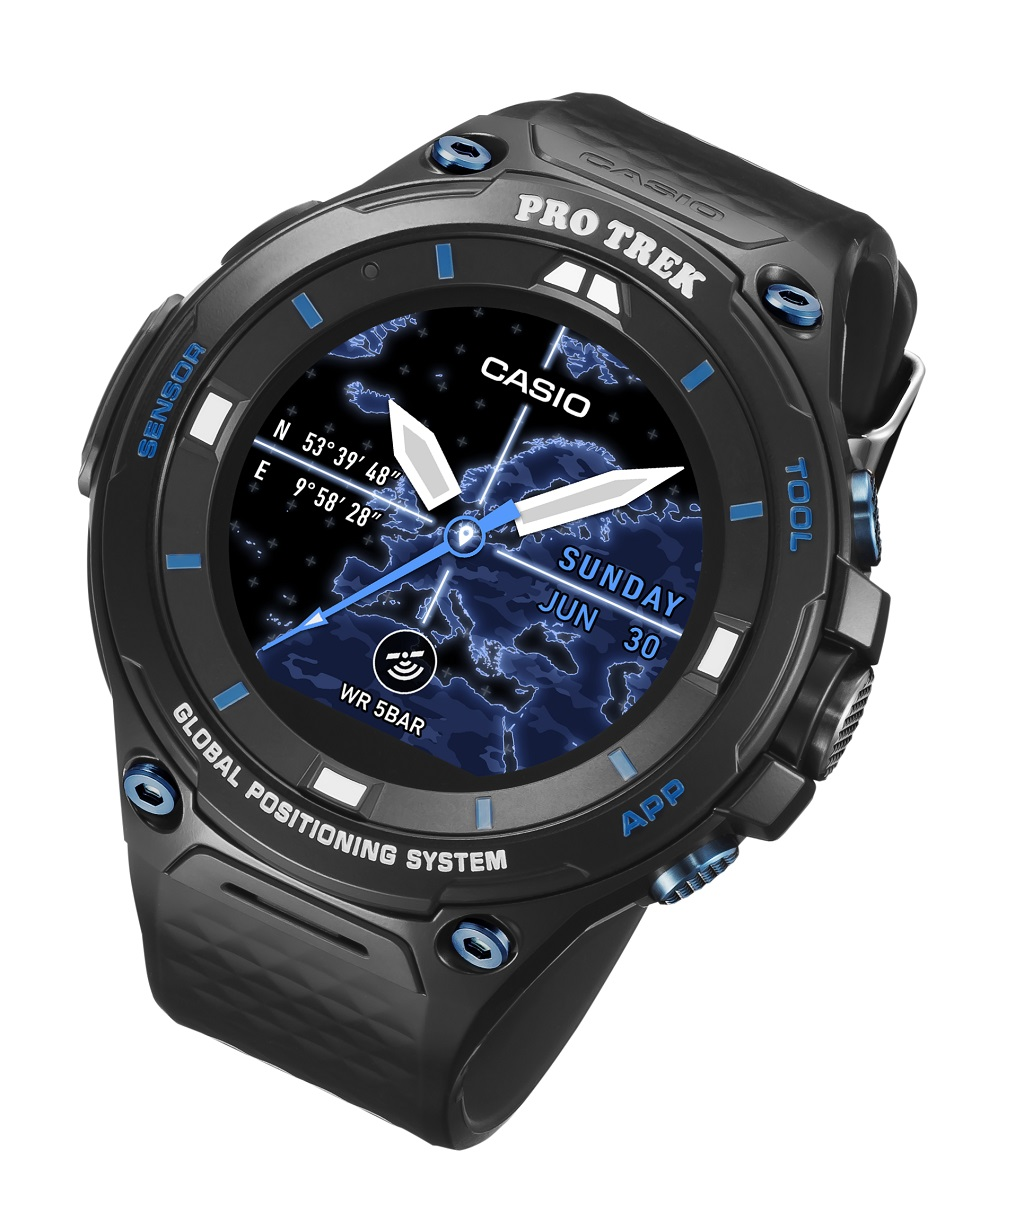 rugged on casio and watch slashgear wear smartwatch huge sg ces rug android hands